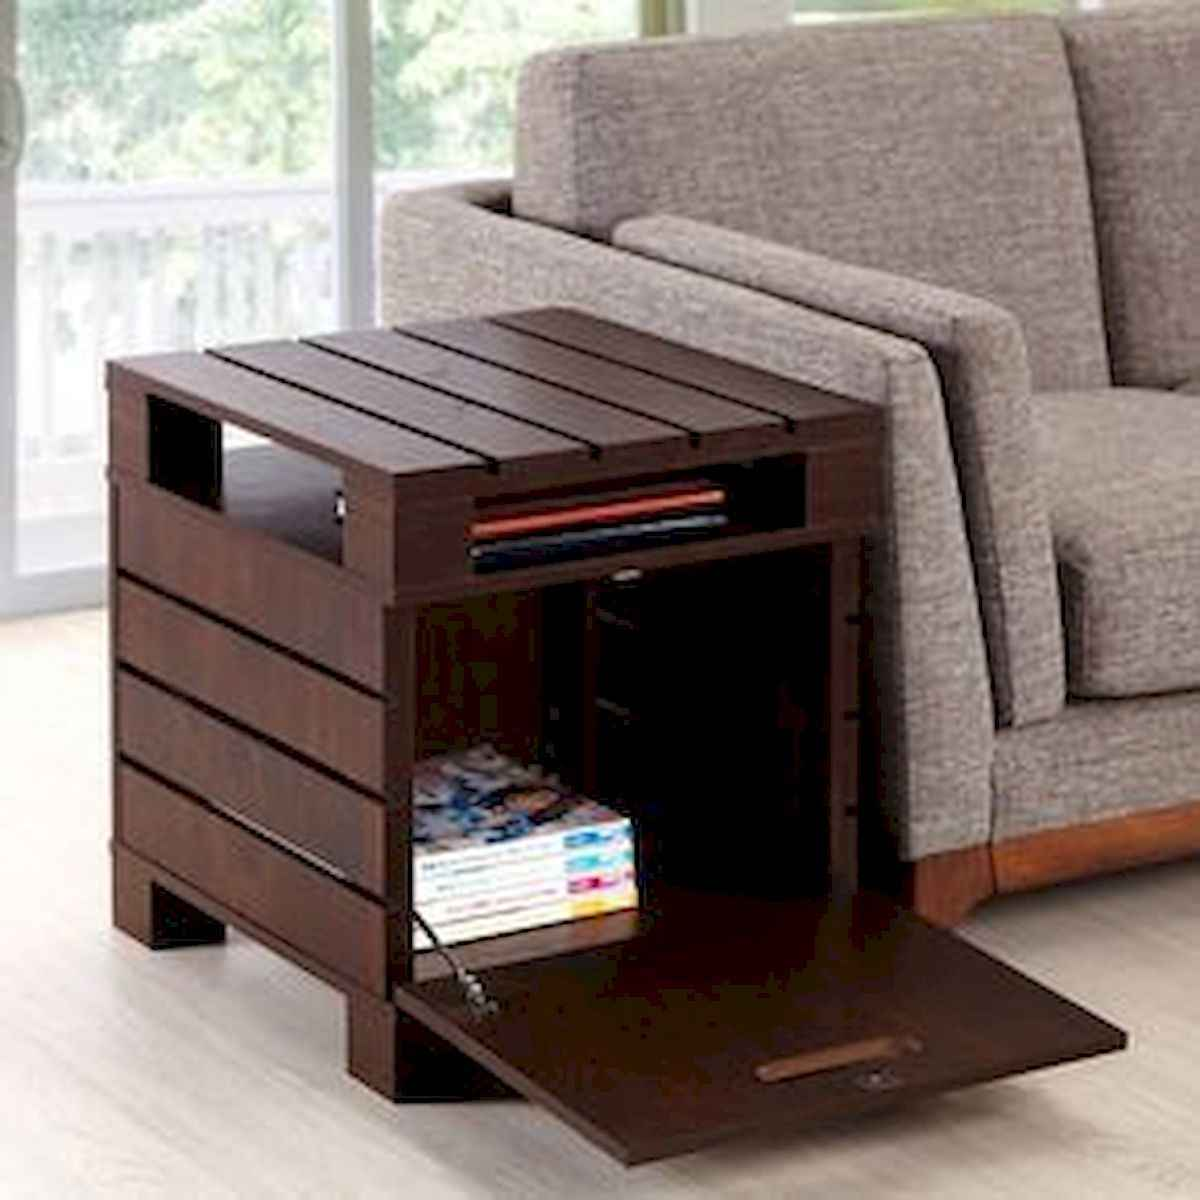 70 Suprising DIY Projects Mini Pallet Coffee Table Design Ideas (42)